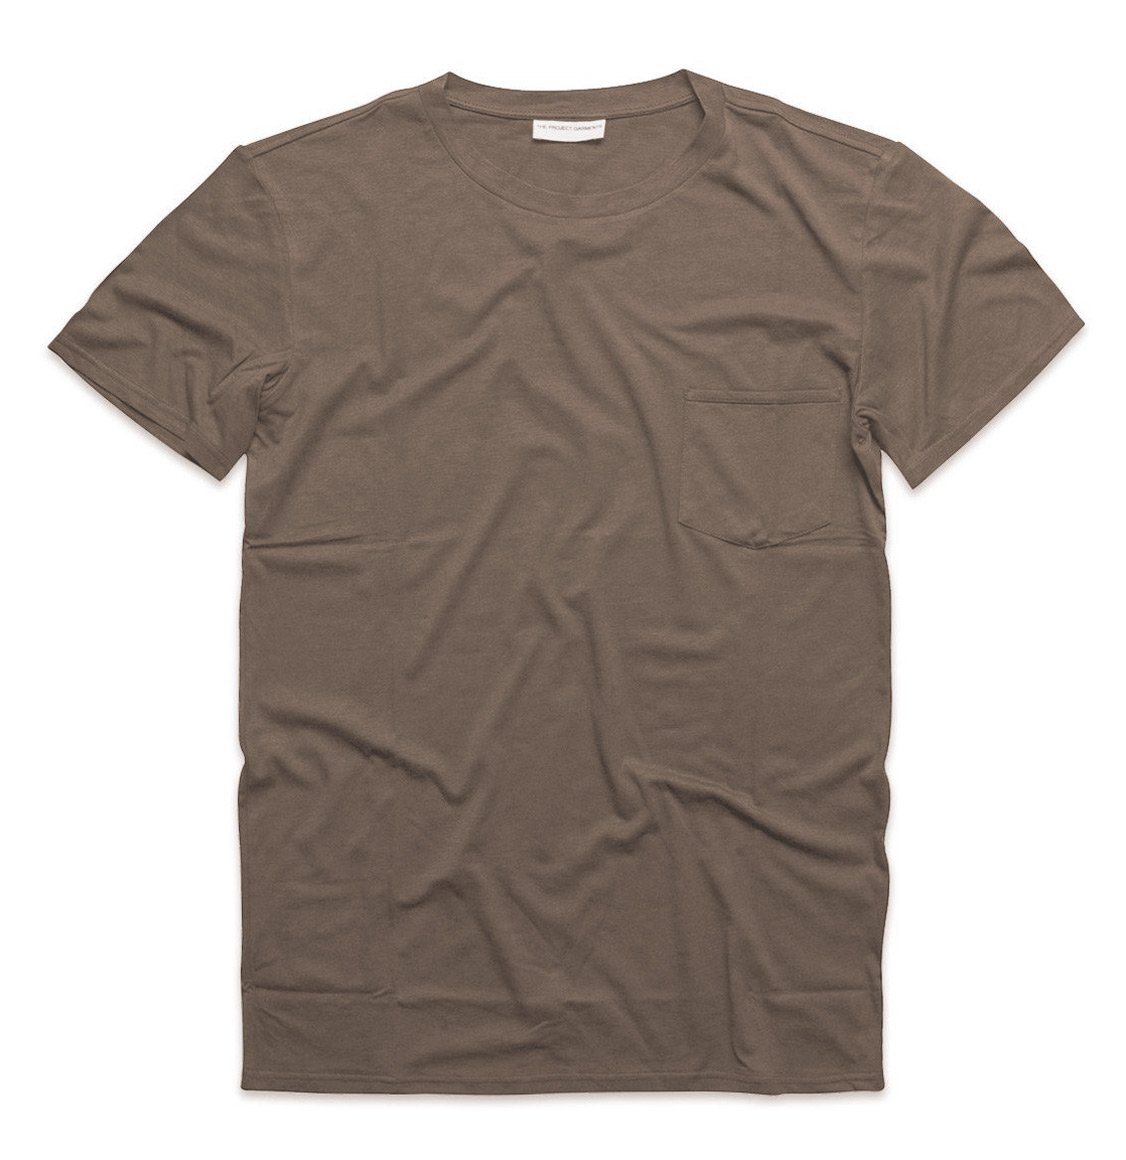 The Project Garments Crew Neck Modal-Blend Pocket T-shirt Taupe